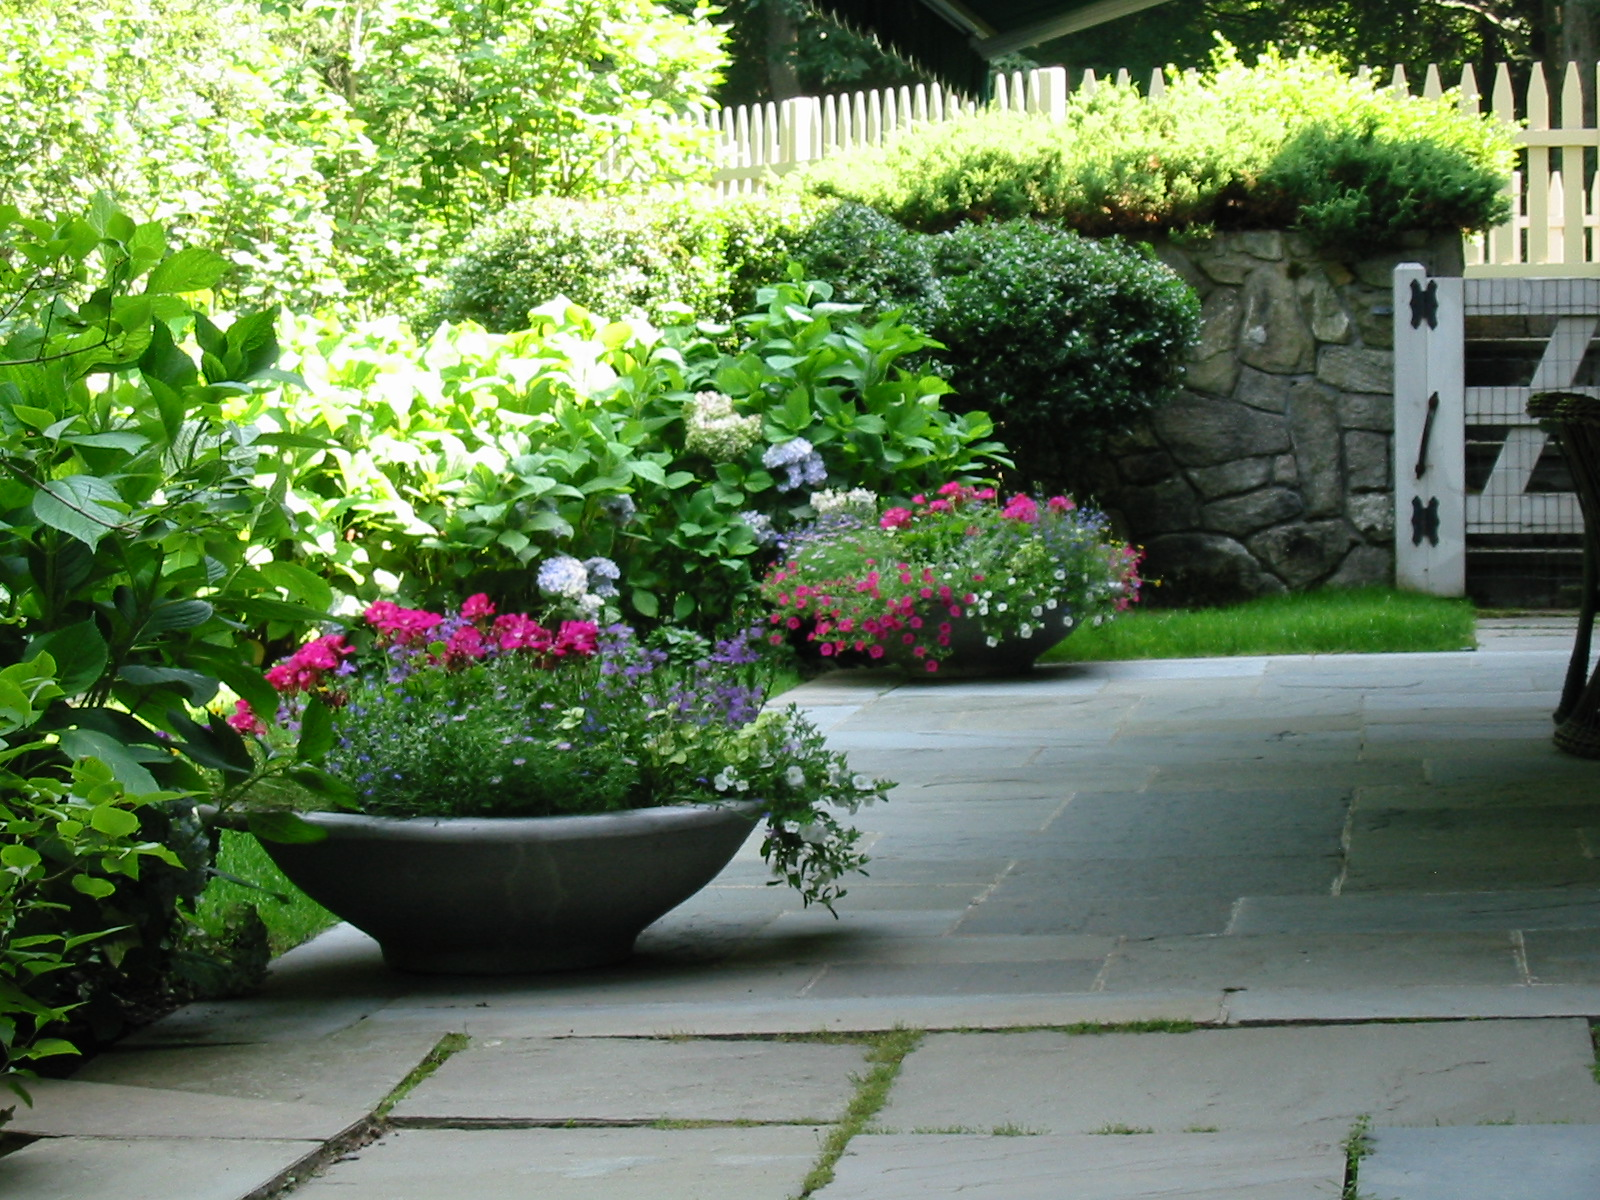 Rear Terrace with Planters